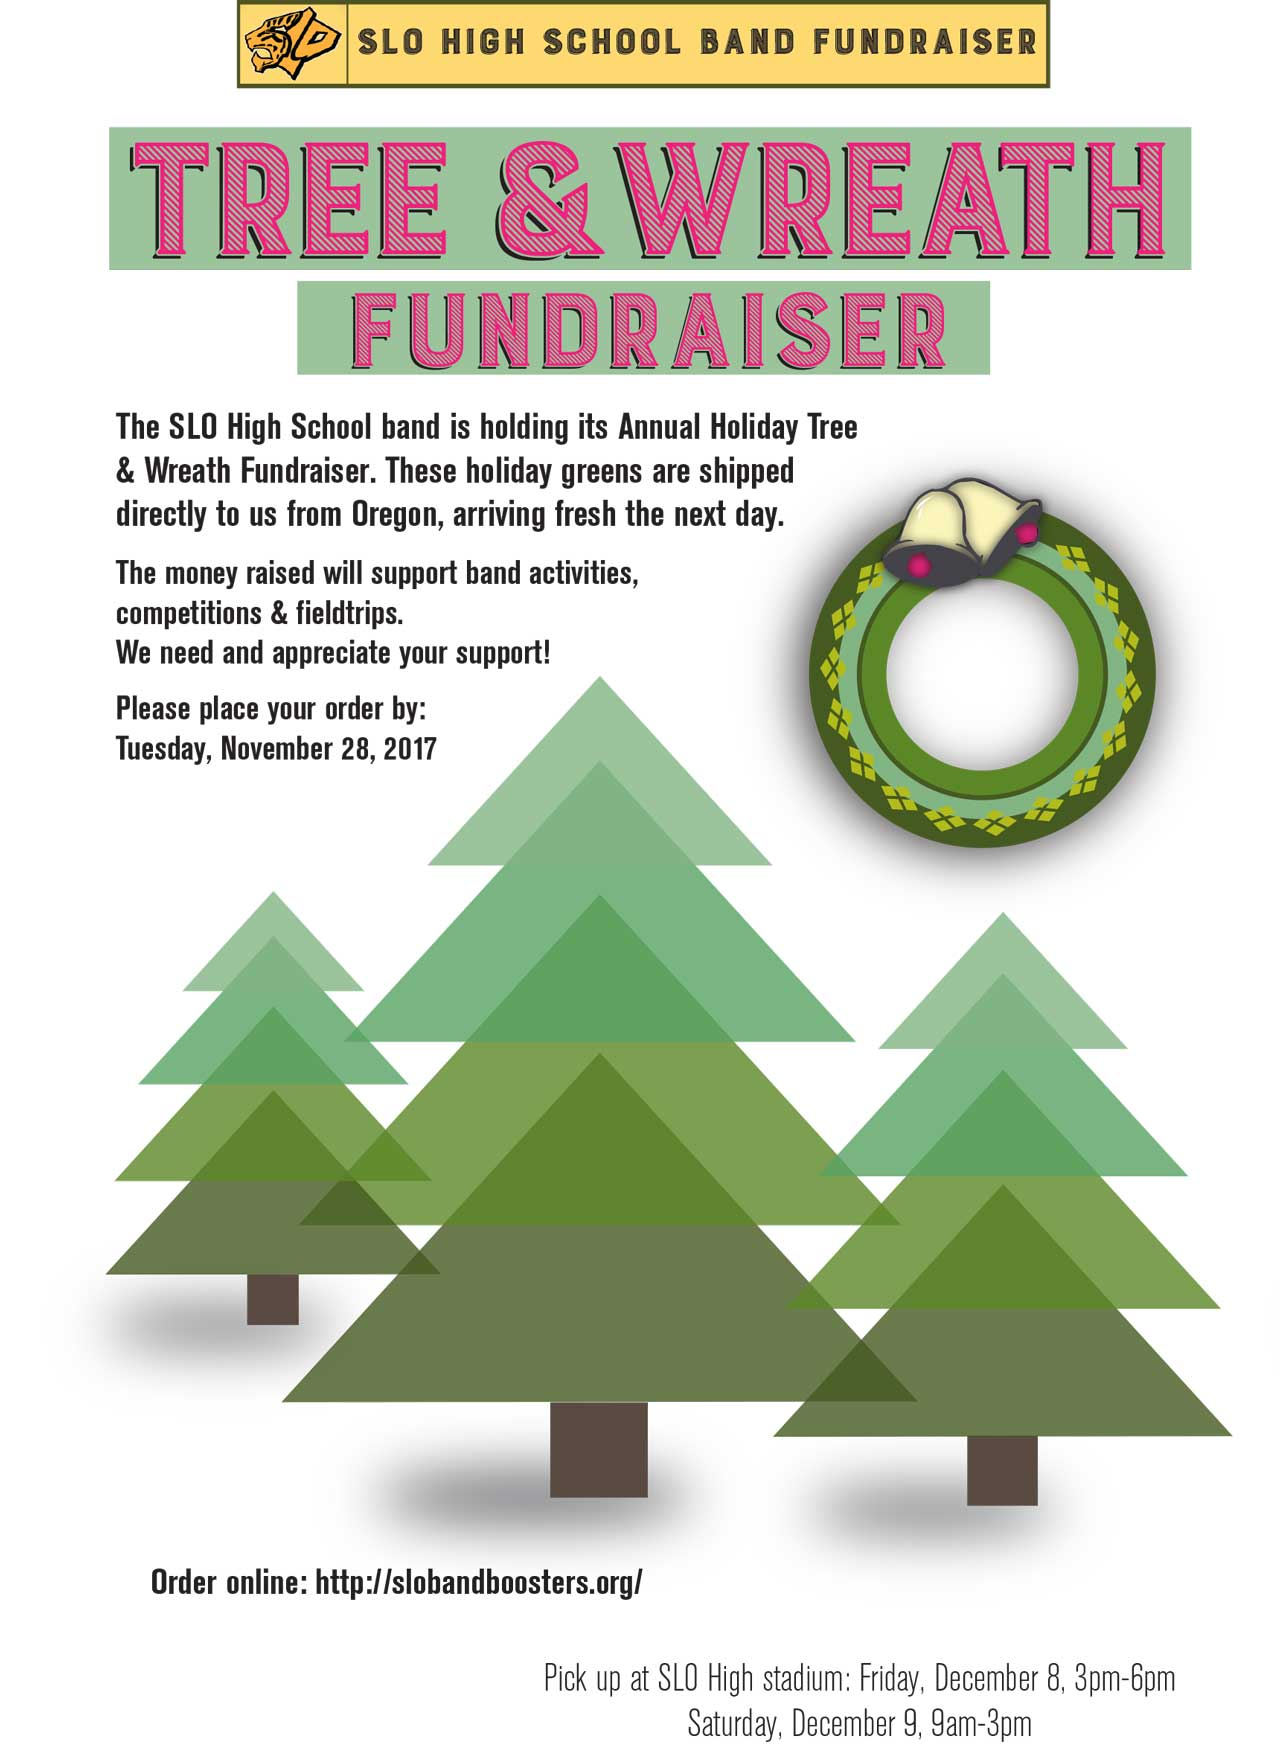 Order Your Holiday Tree And Wreaths From The Slo High Band